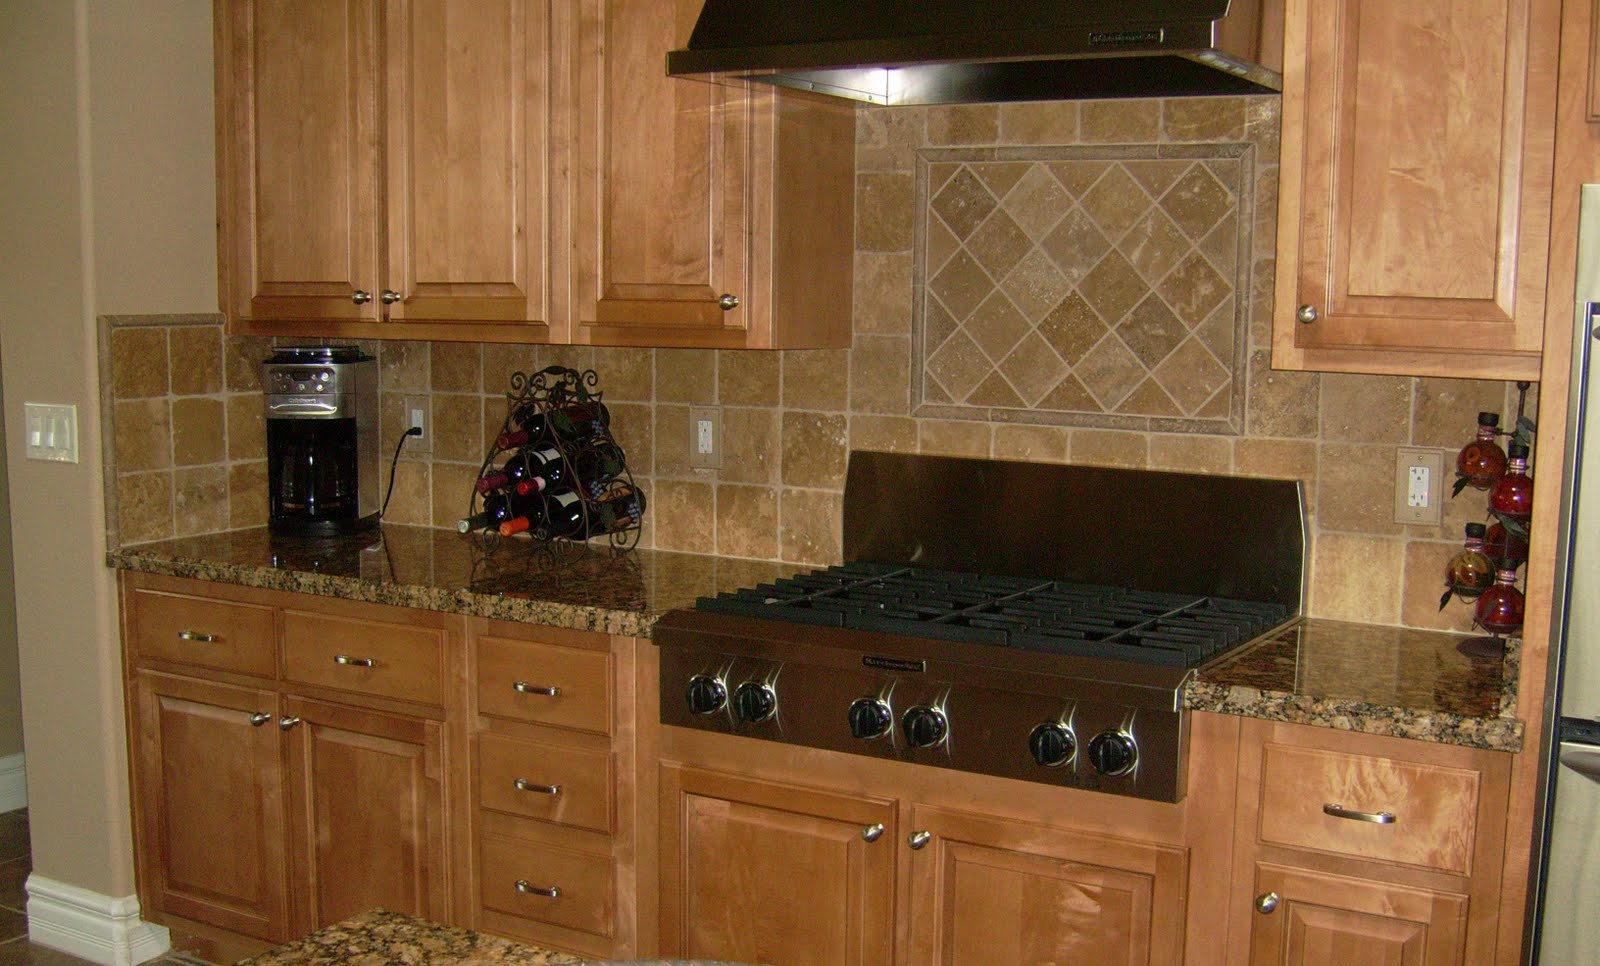 Very Best Kitchen Backsplash Tile Design Idea 1600 x 966 · 196 kB · jpeg